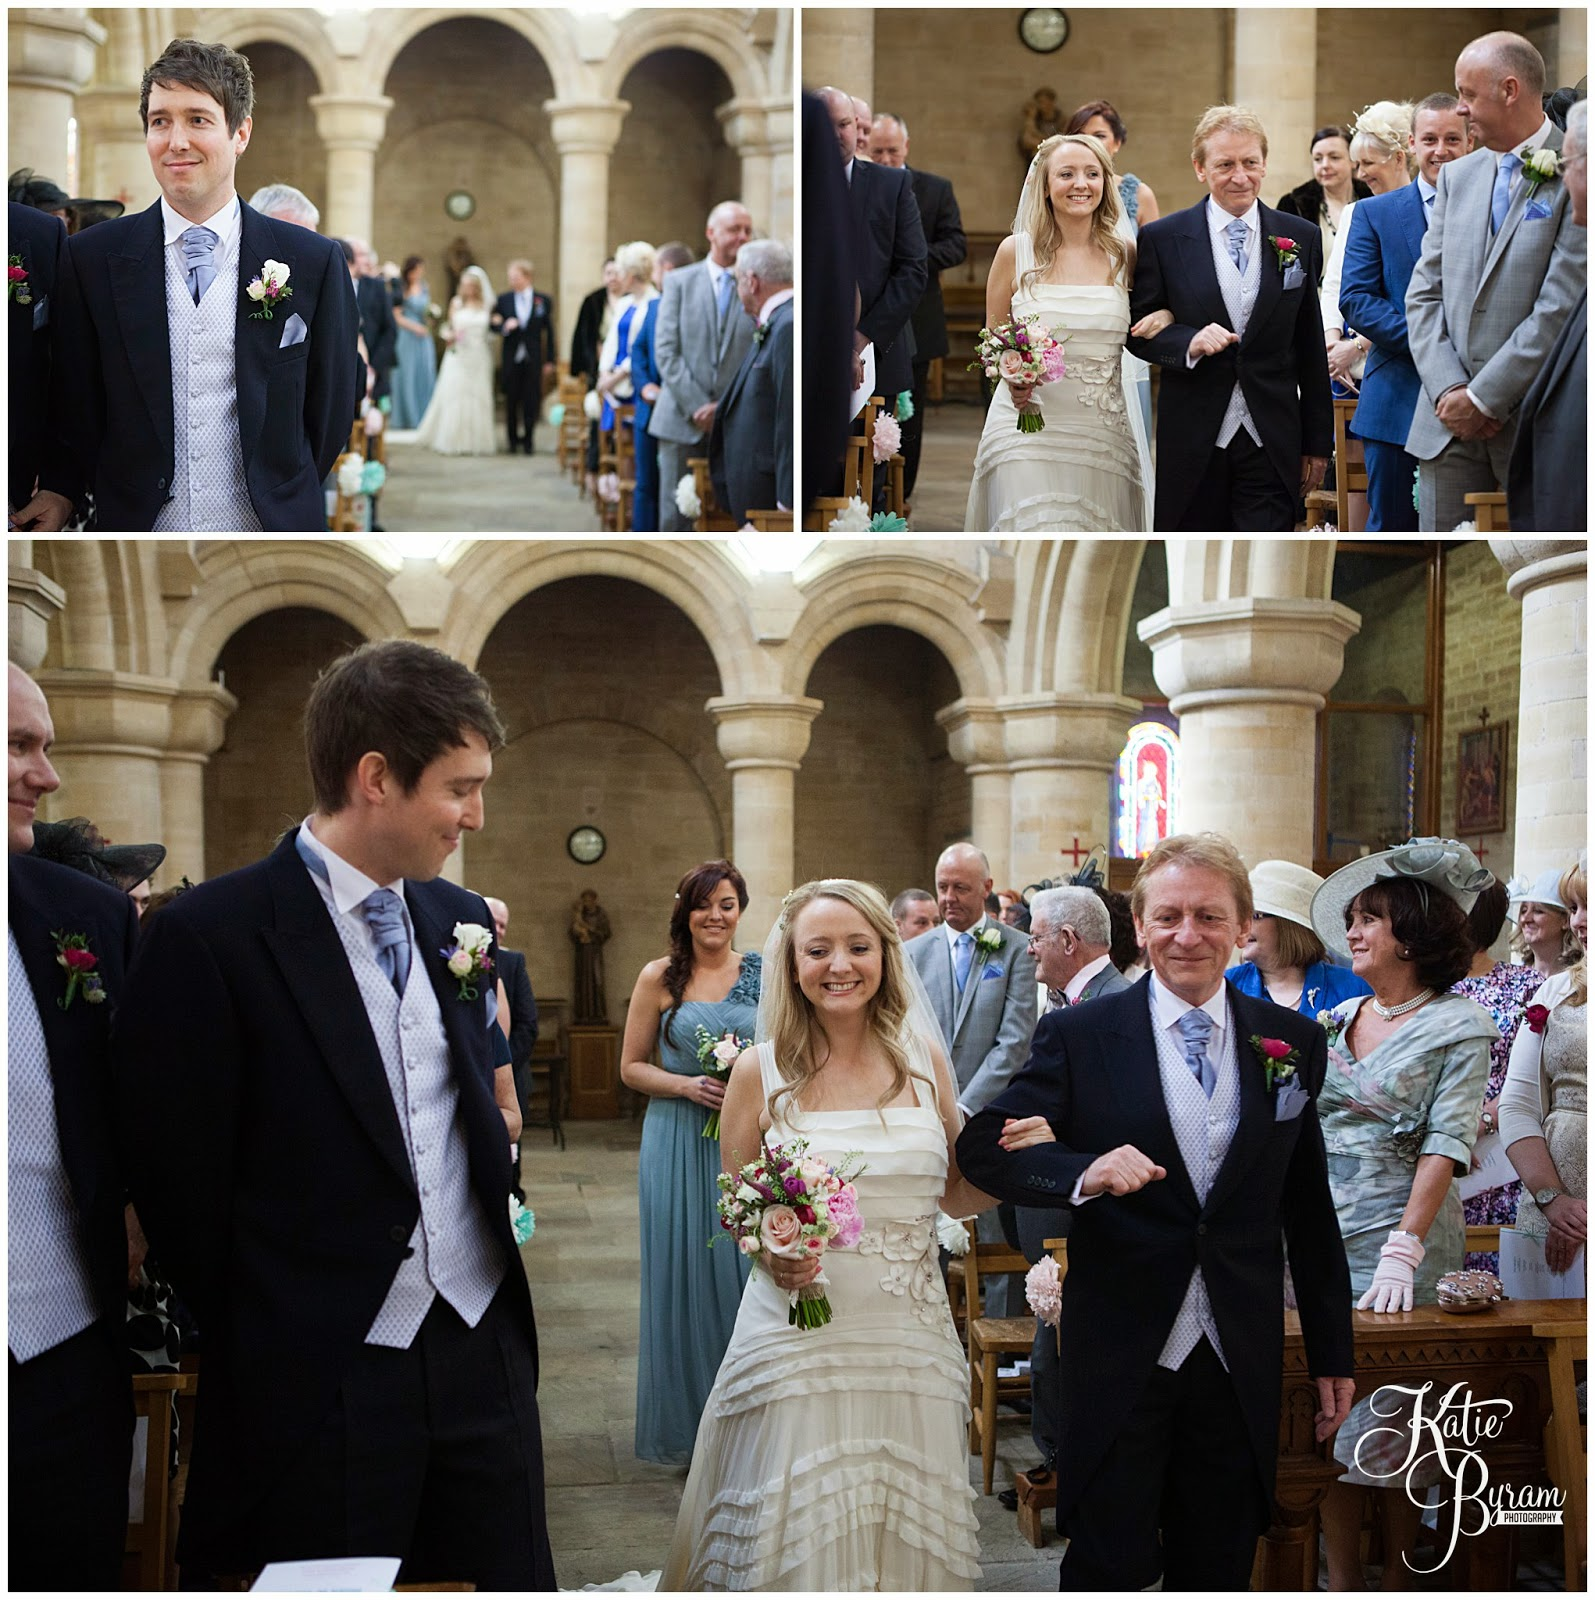 Katie Byram Photography: Priory Cottages Wedding Wetherby